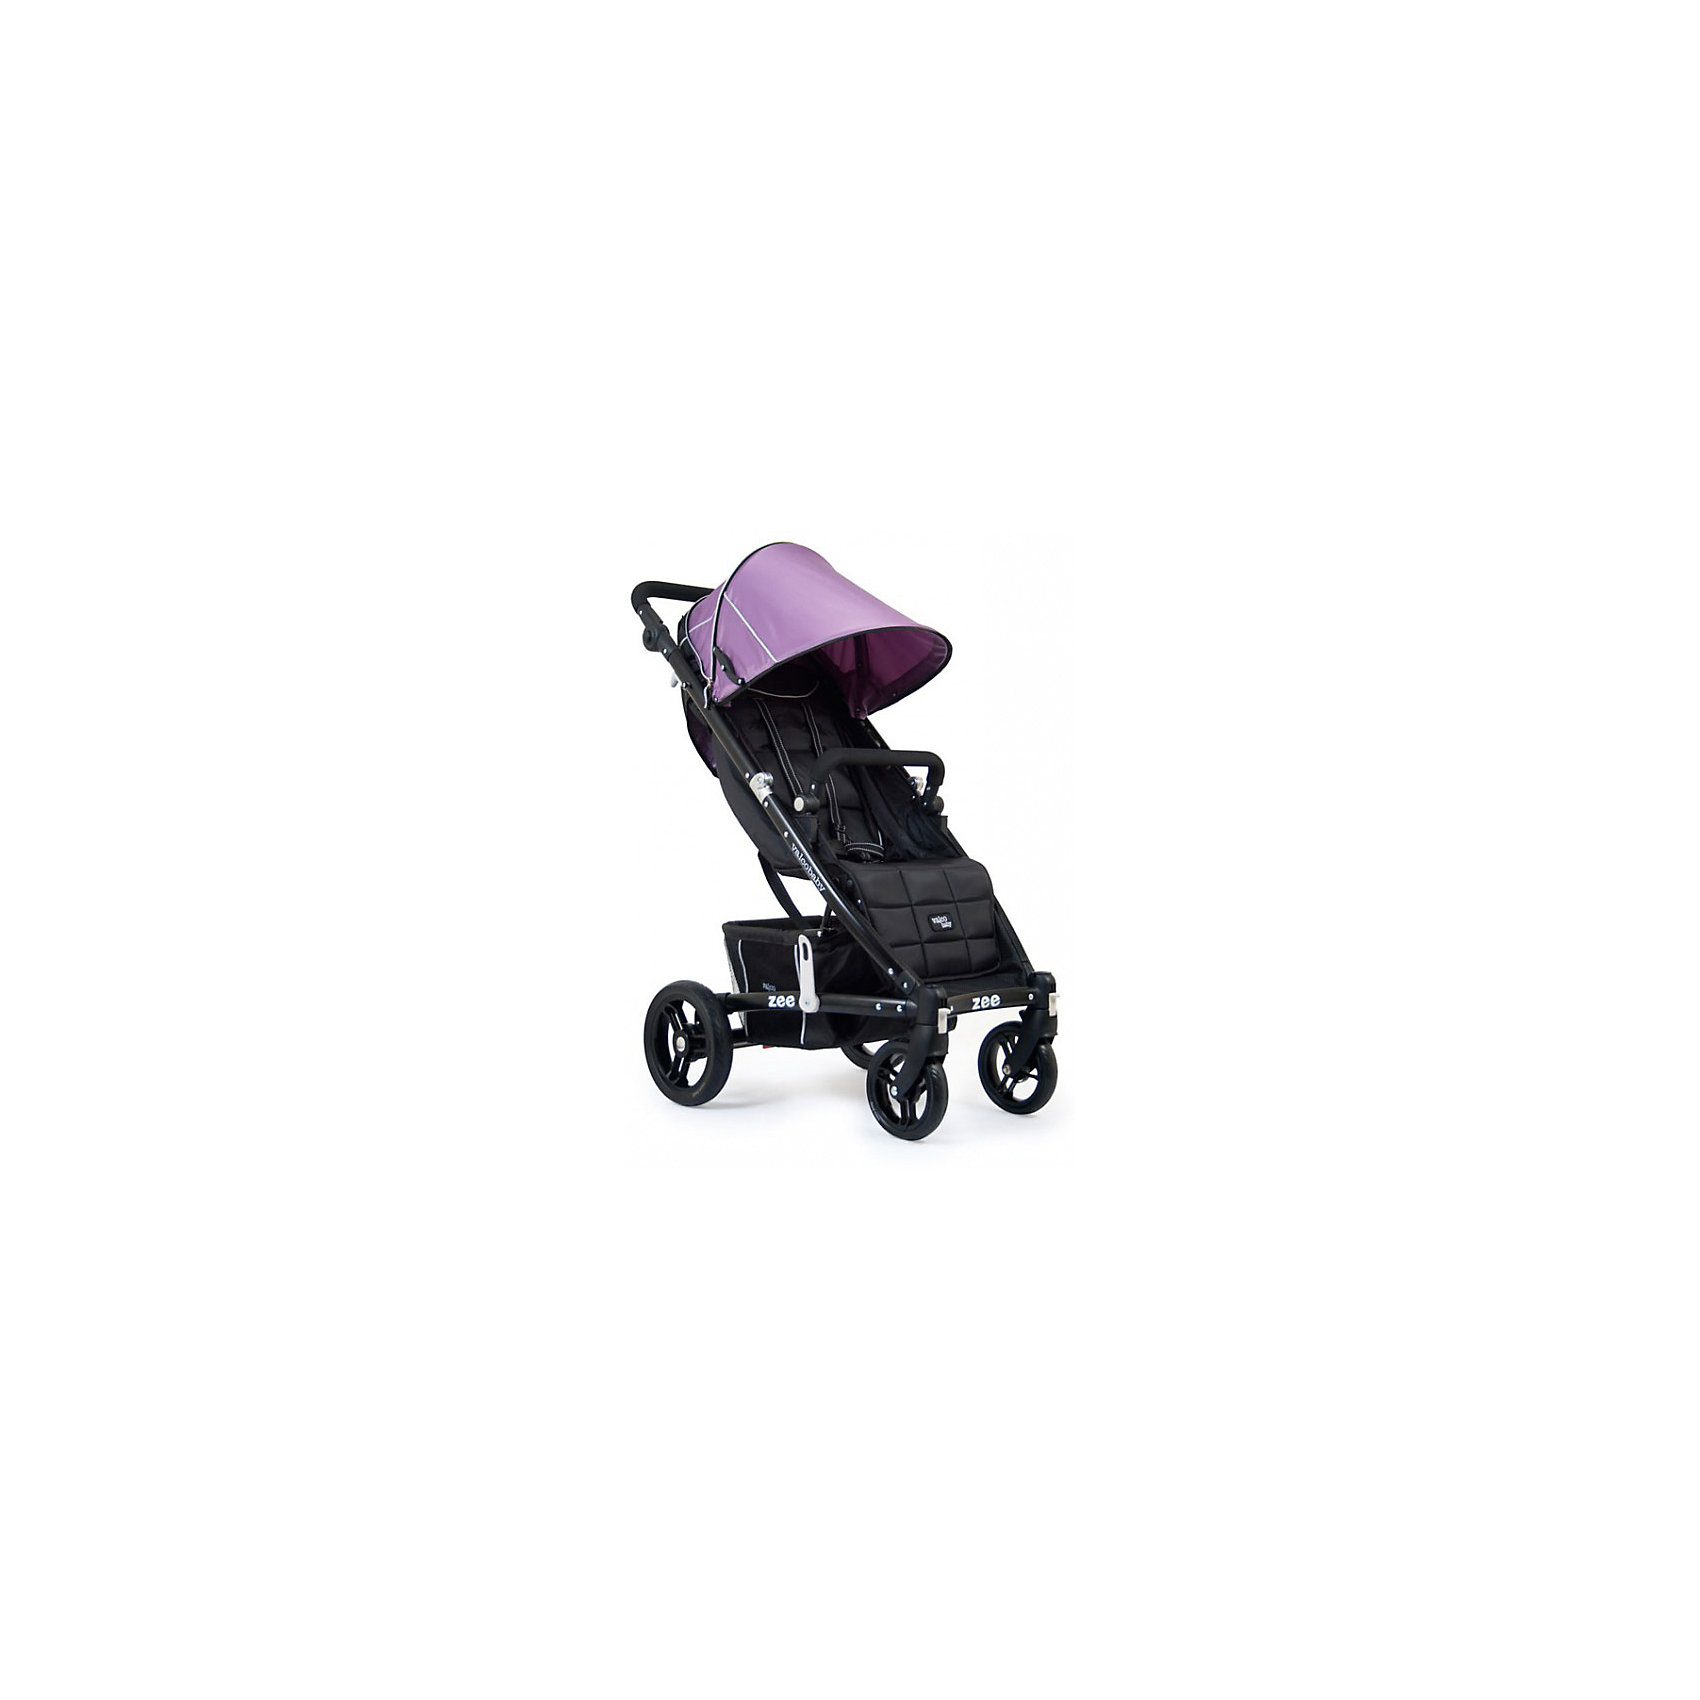 Valco Baby Прогулочная коляска  Zee, Valco baby , lilac прогулочная коляска cool baby kdd 6699gb t fuchsia light grey